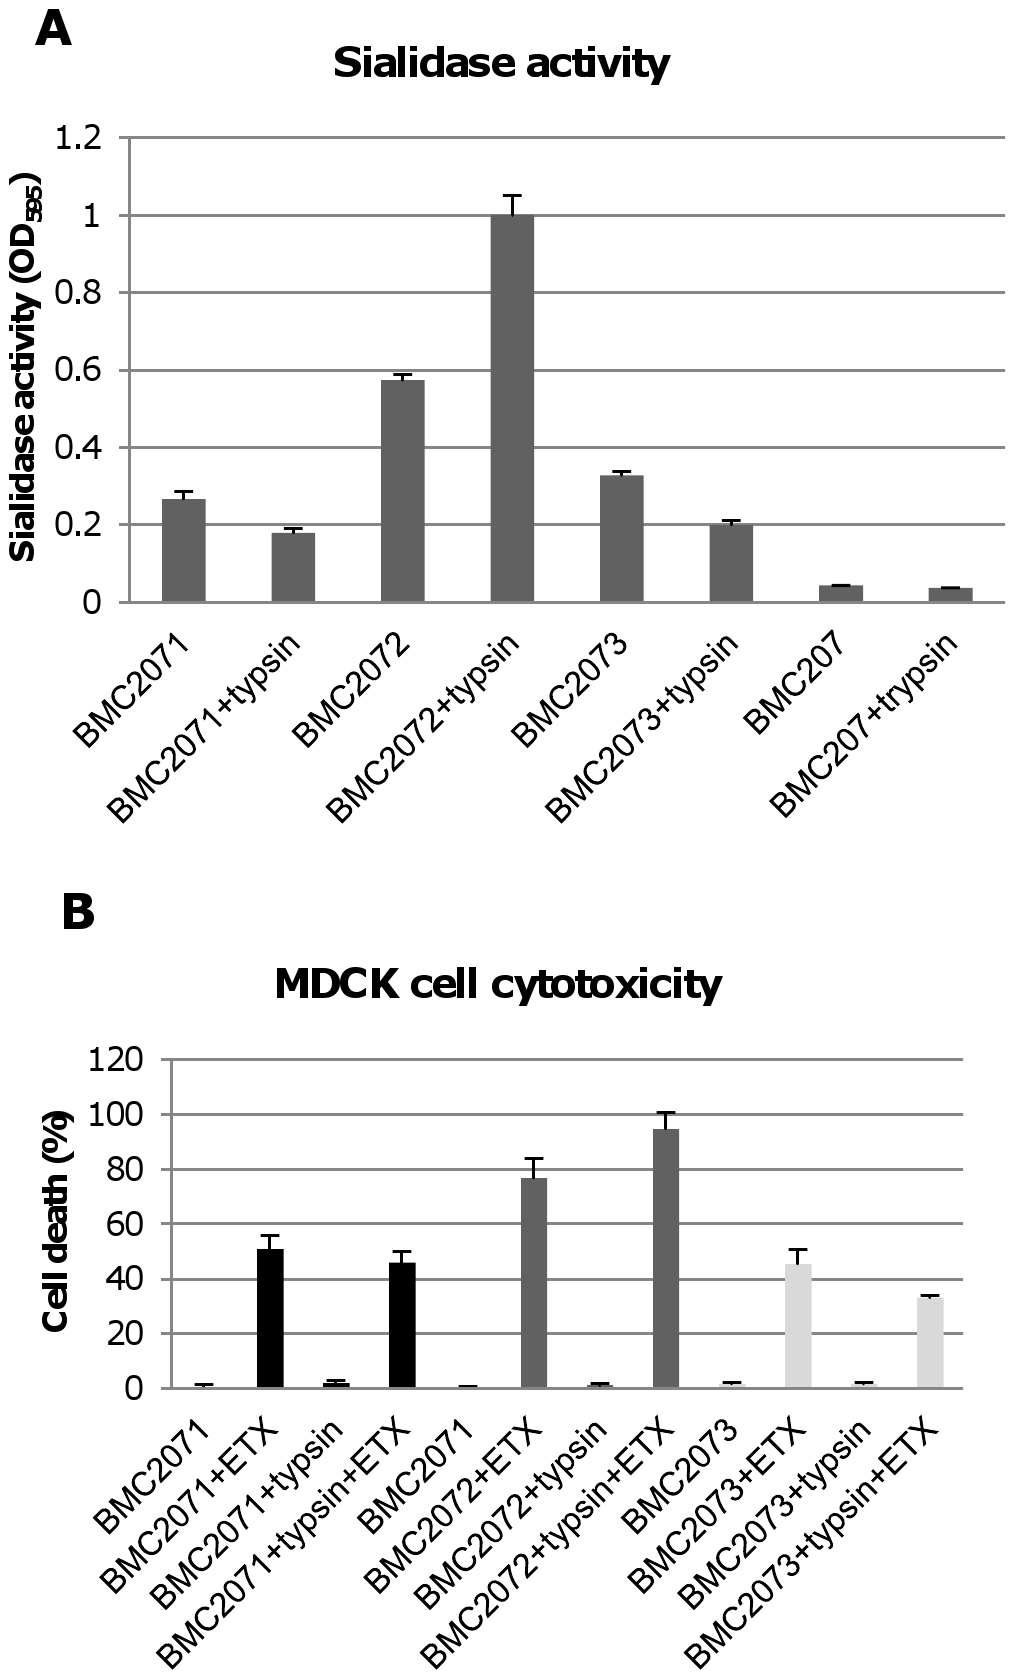 Sialidase activity and cytotoxicity for MDCK cells caused by culture supernatants from complementing strains.